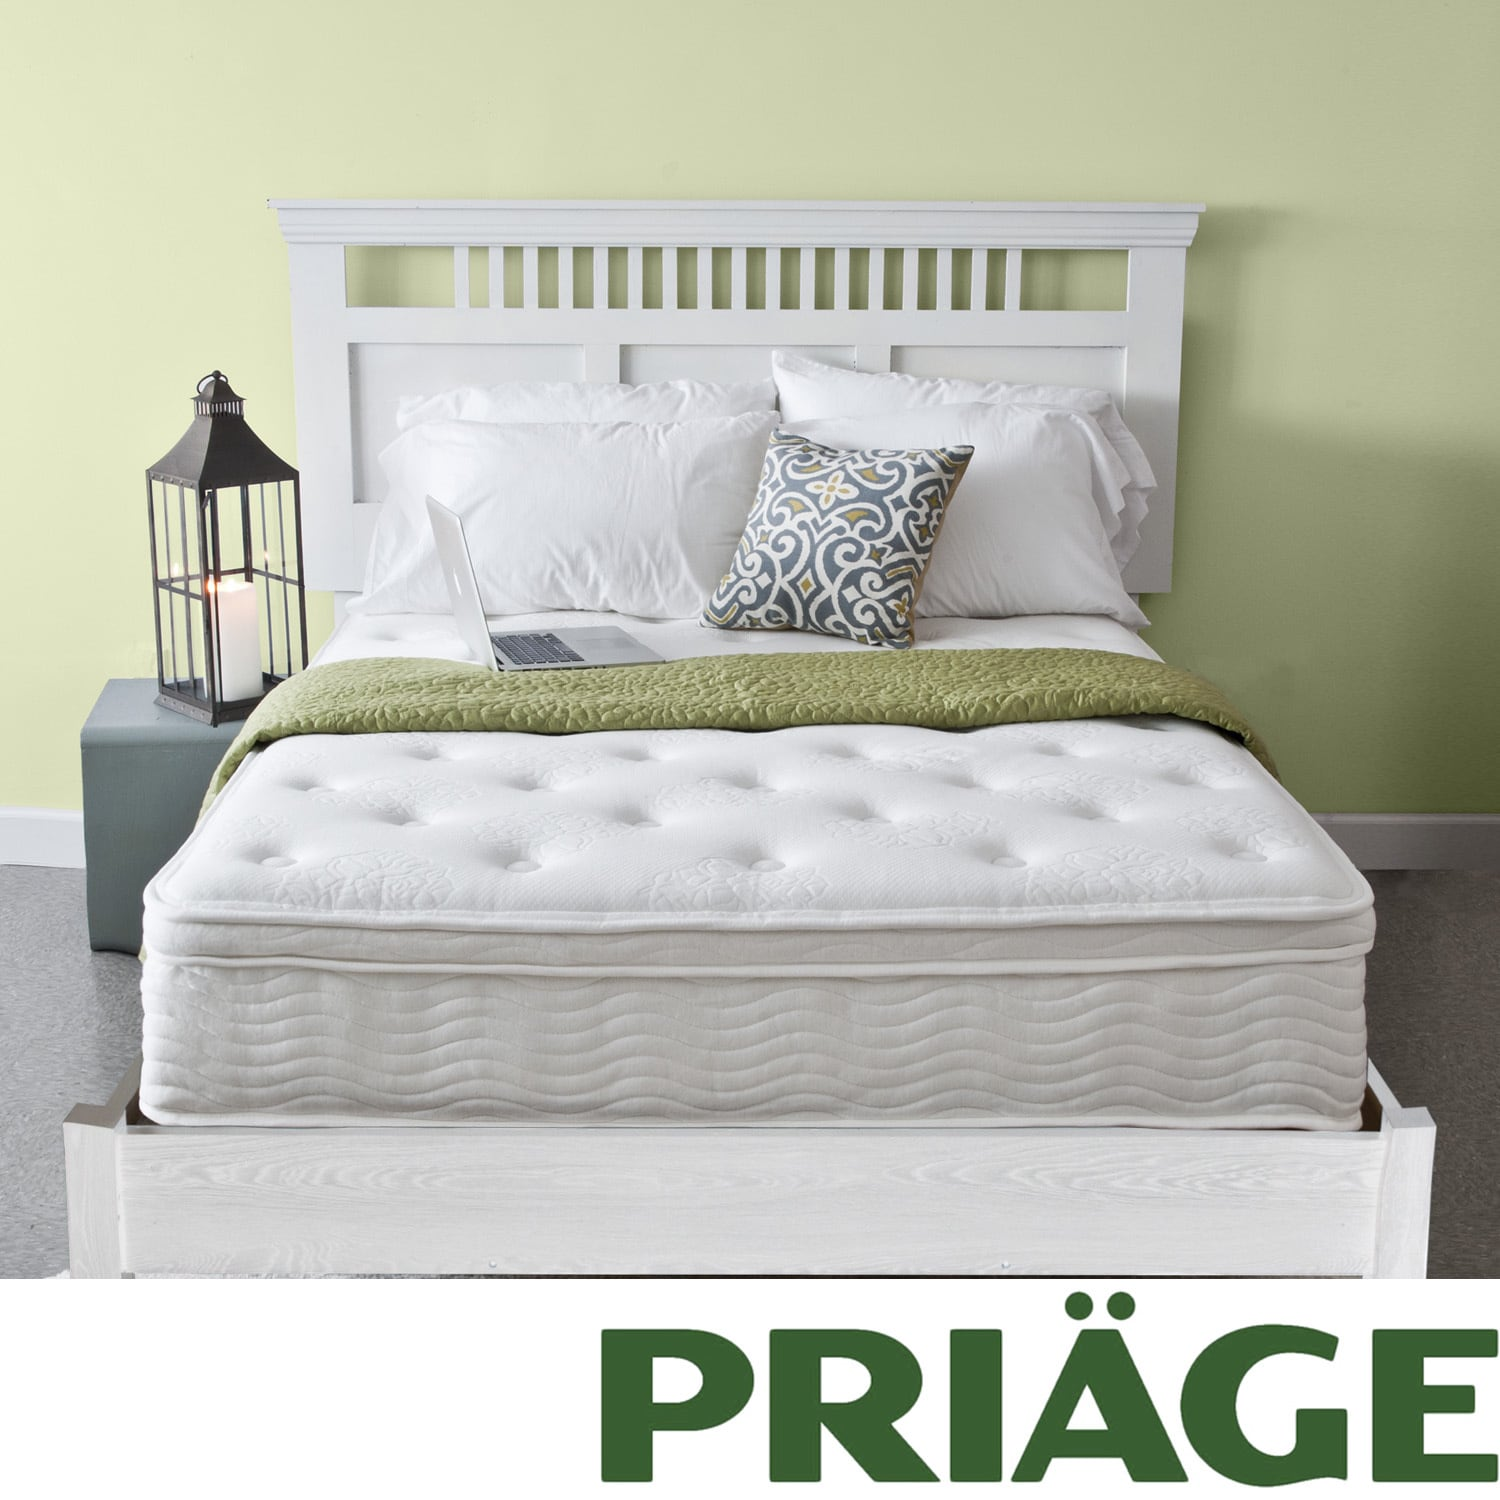 Priage Euro Box Top 12-inch Full-size iCoil Spring Mattress at Sears.com